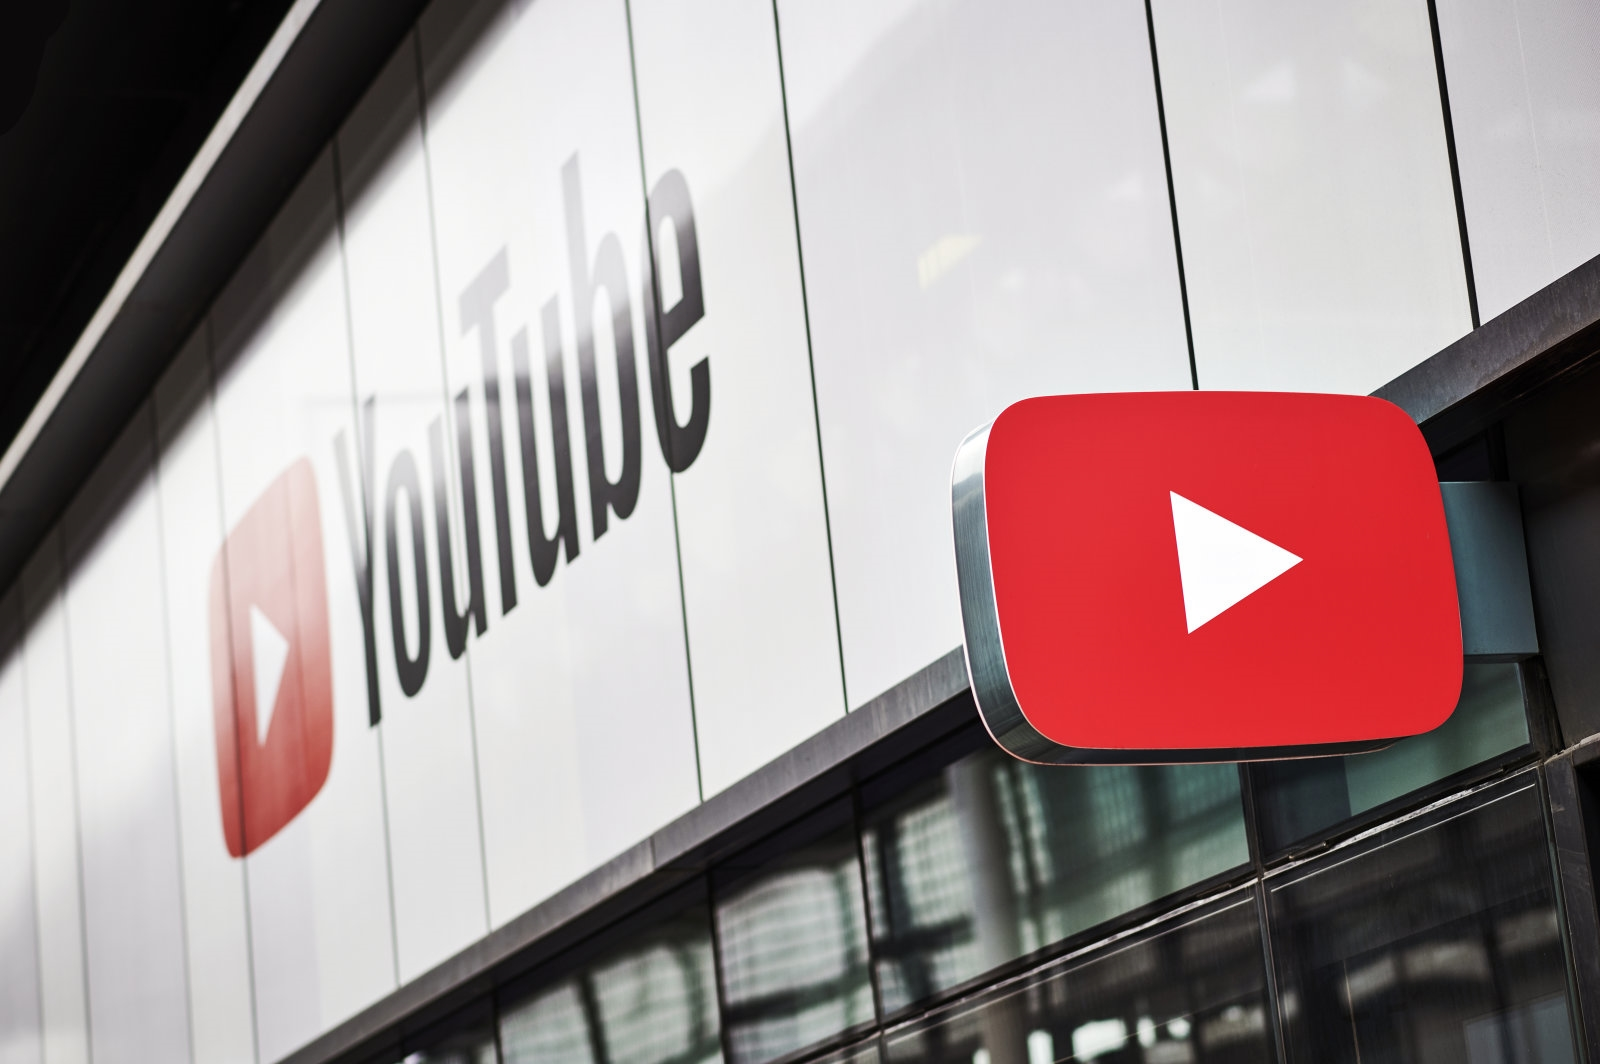 YouTube's channel removals soar following hate speech crackdown | DeviceDaily.com